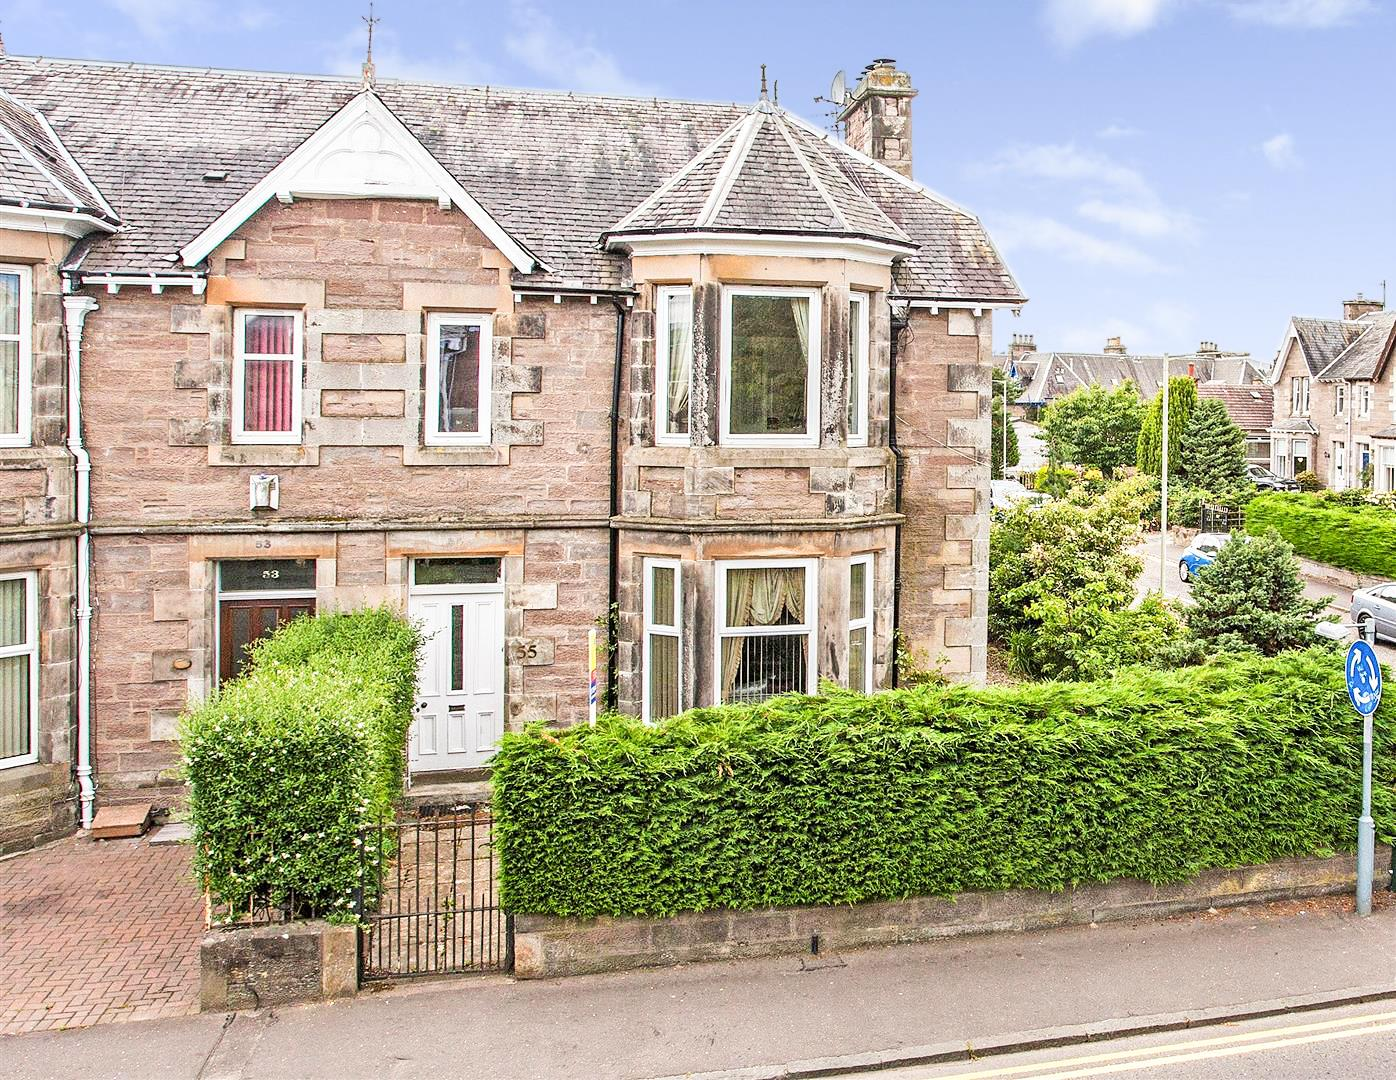 55, Balhousie Street, Perth, Perthshire, PH1 5HJ, UK